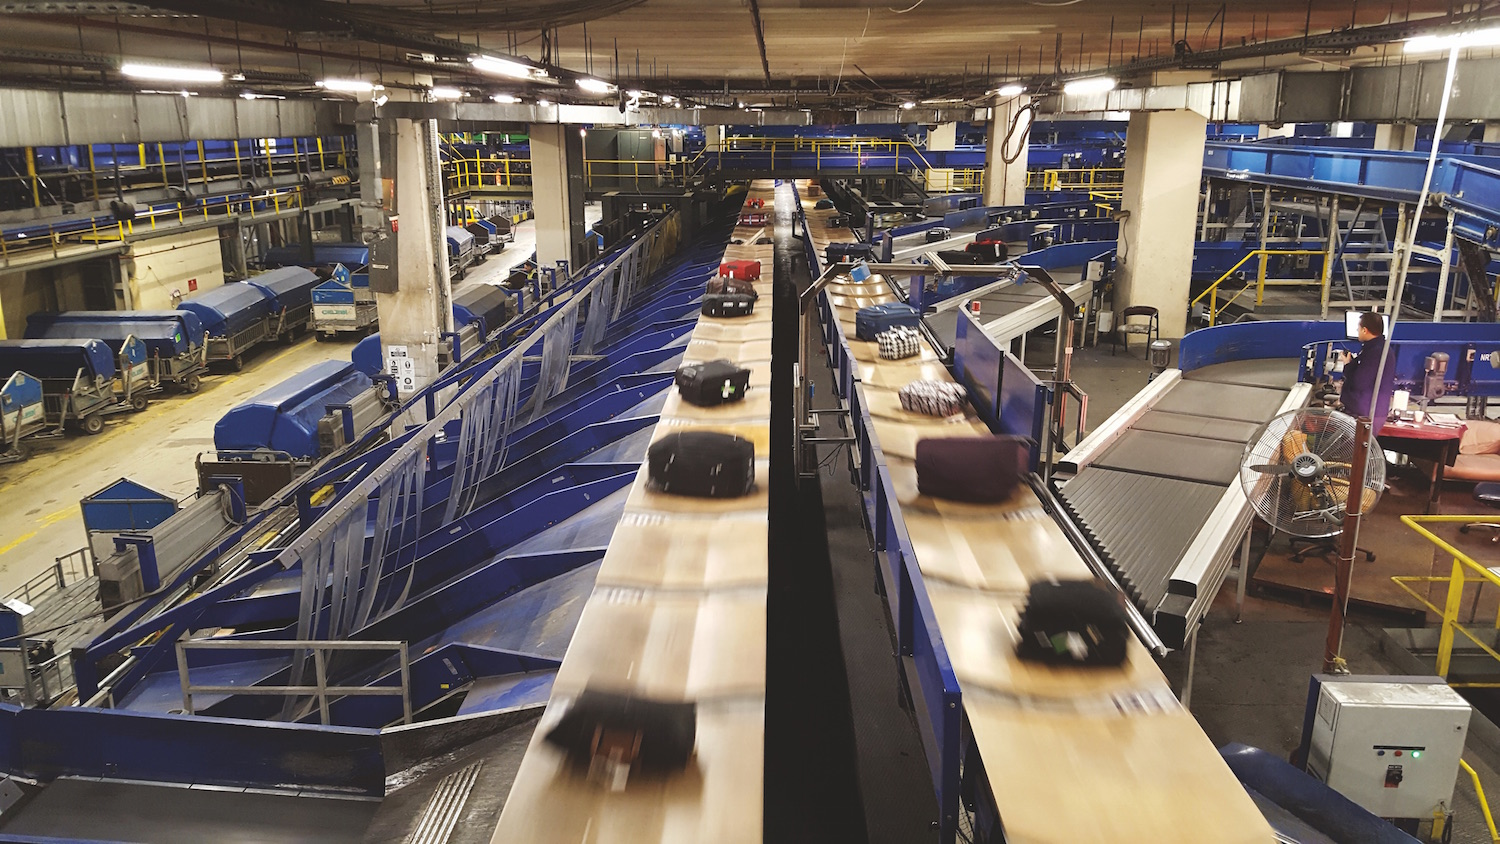 Airport Baggage Handling Systems Alstef Automation S A